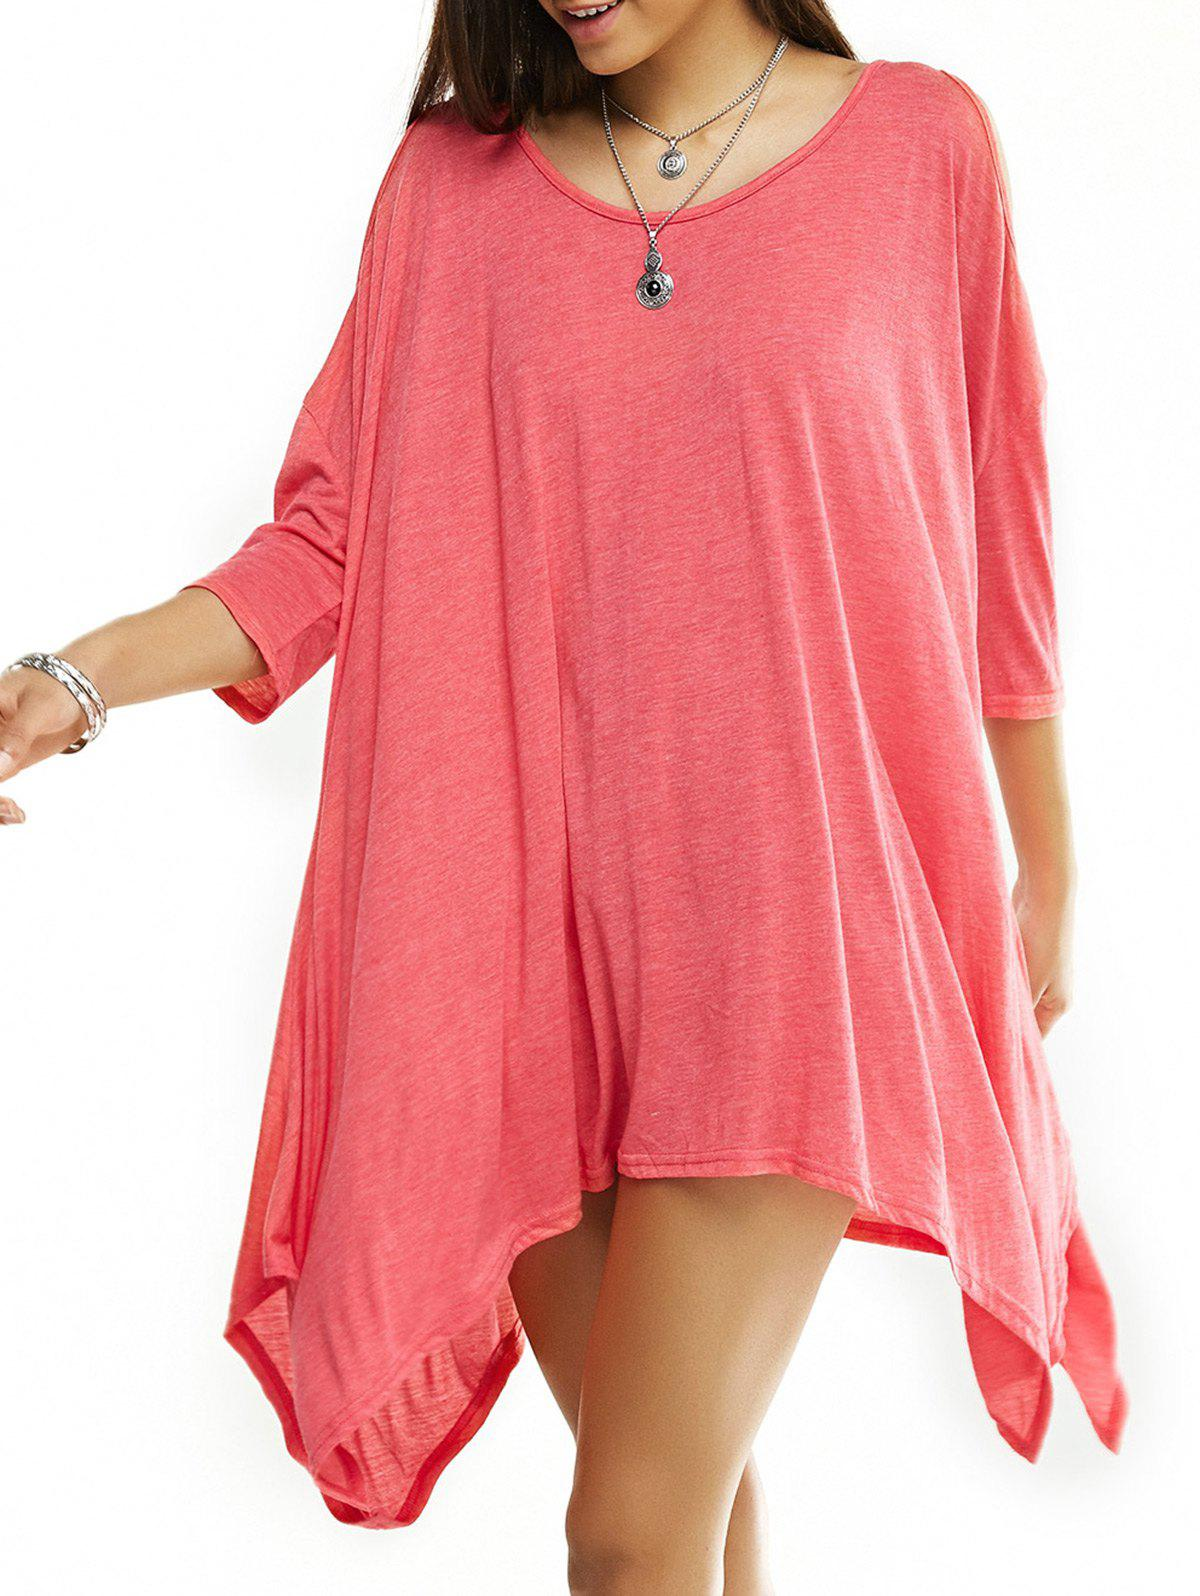 Asymmetrical Cut Out Solid Color T-Shirt